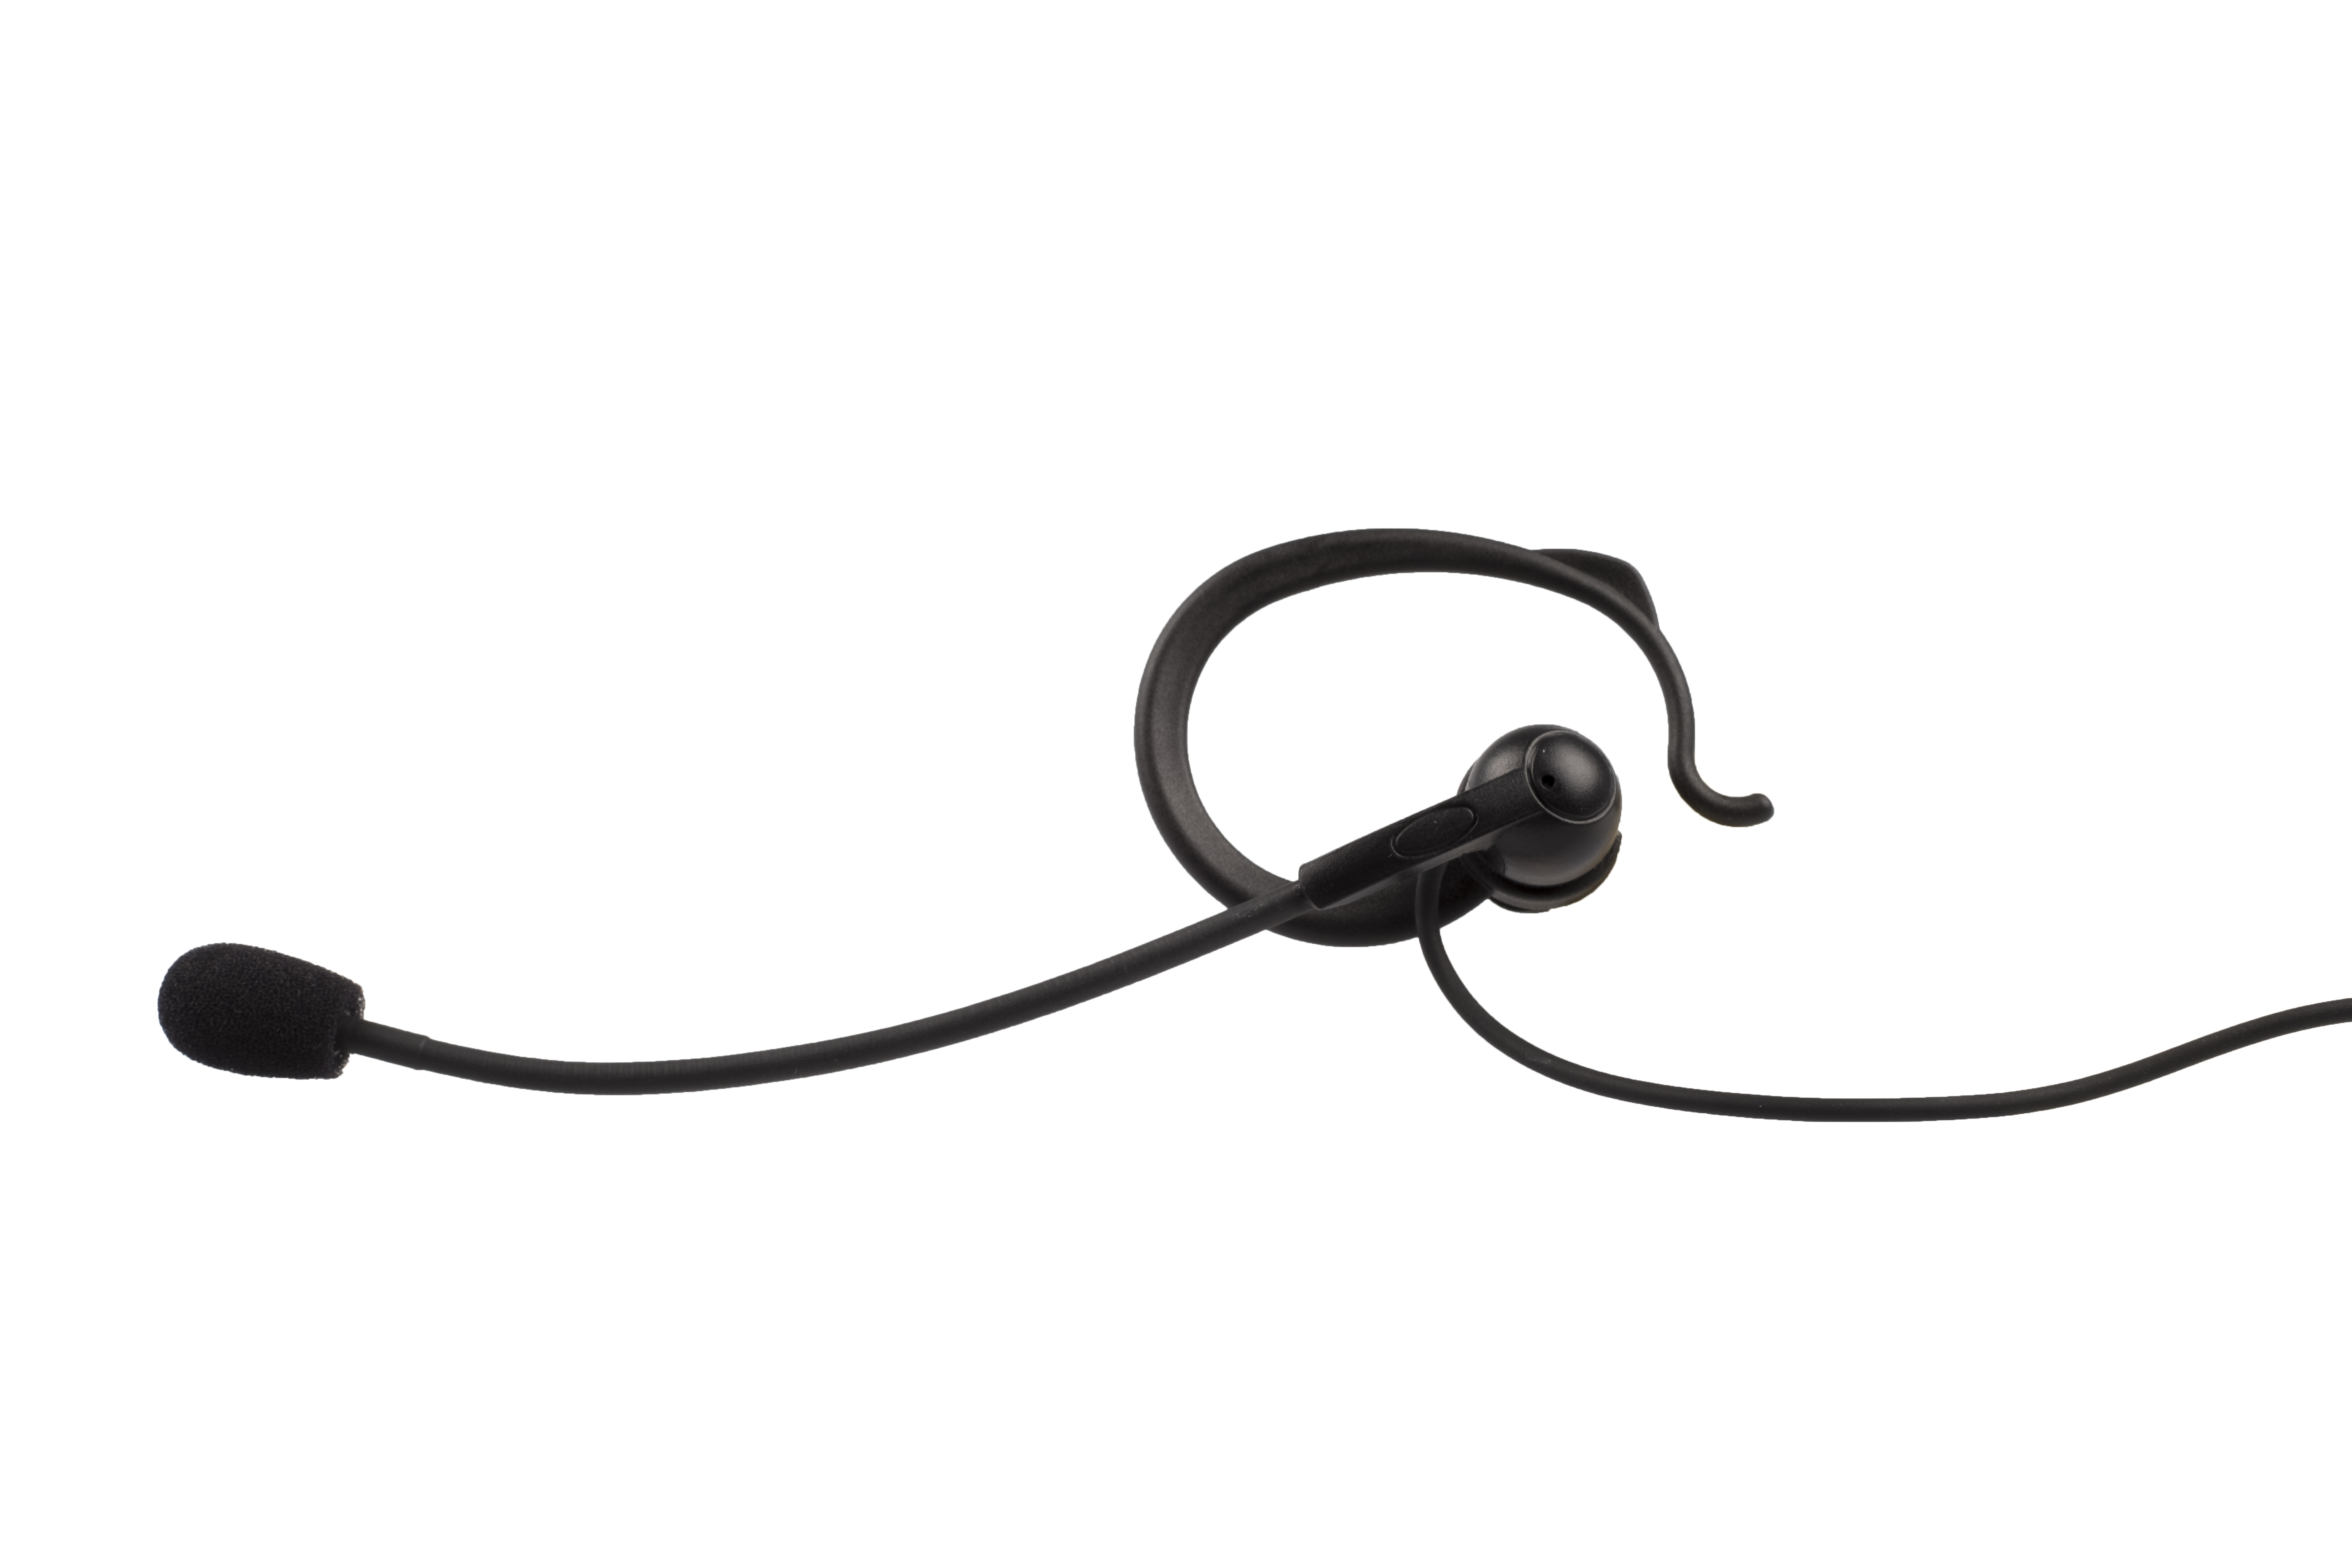 /axiwi-HE-075-sport-headset-noise-cancelling